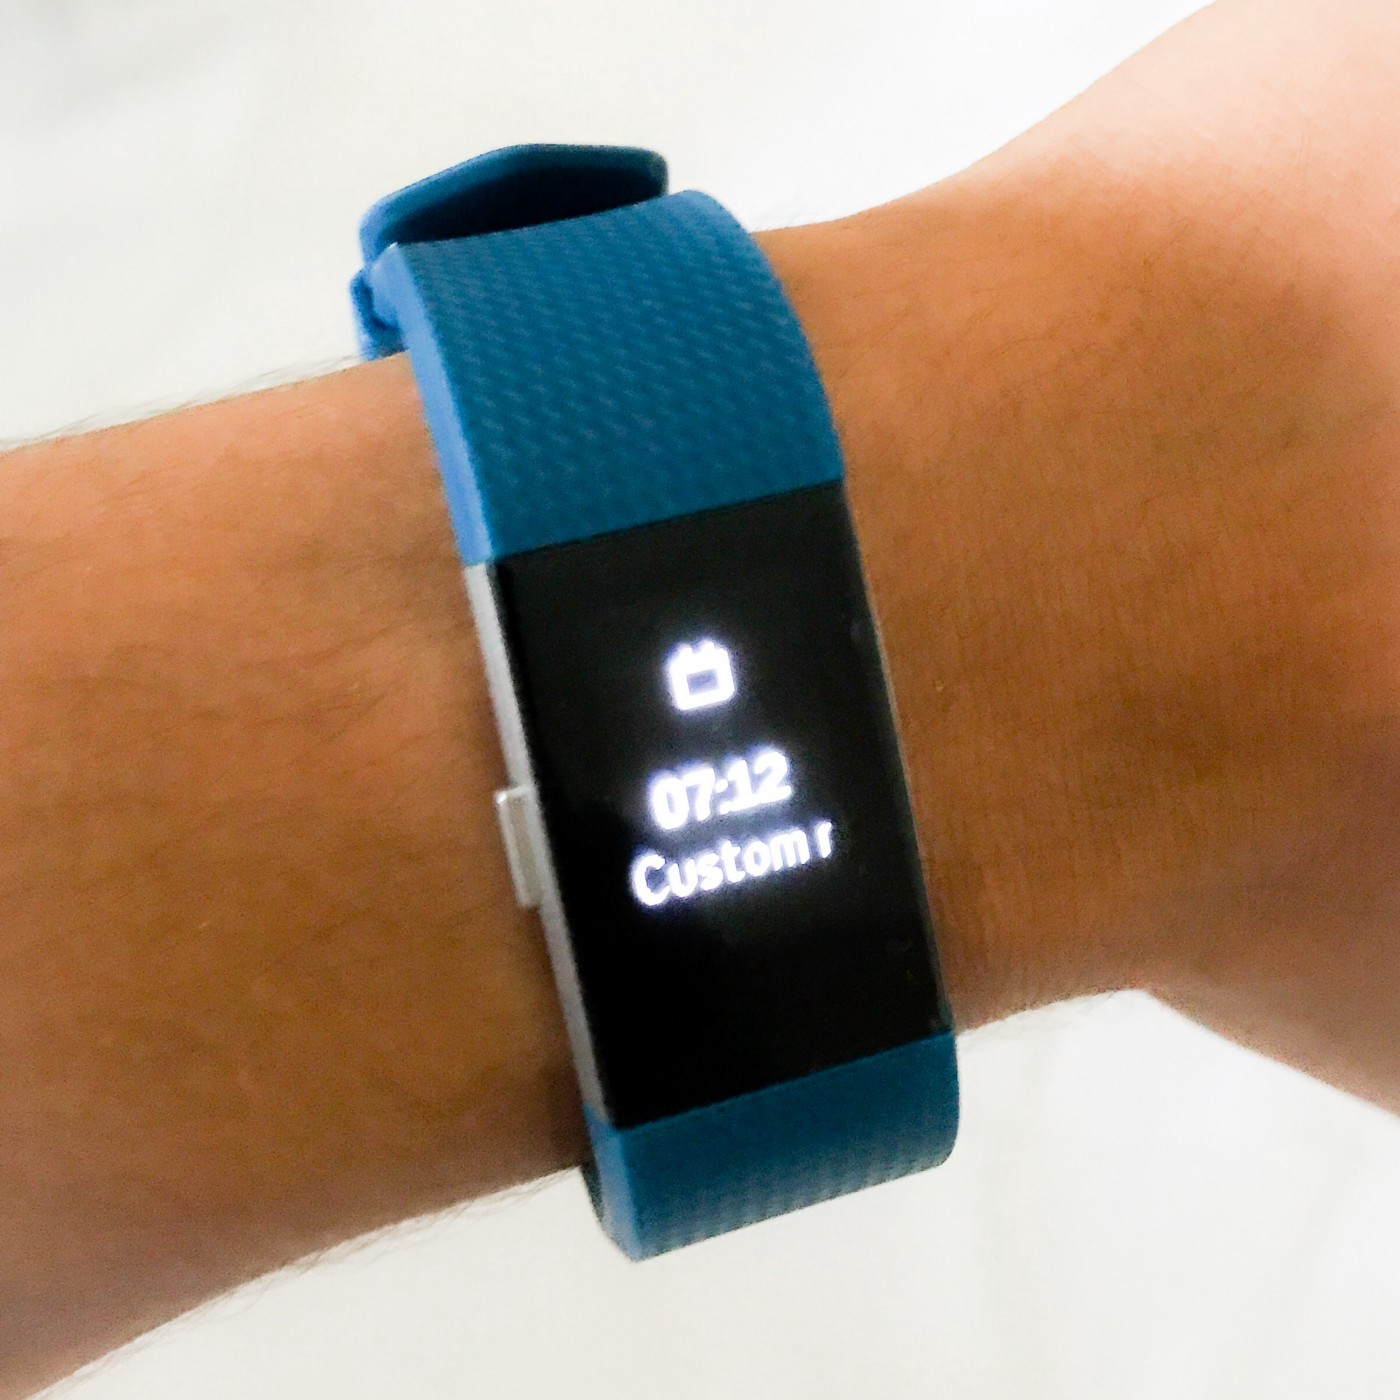 How to get whatsapp notifications on fitbit alta hr